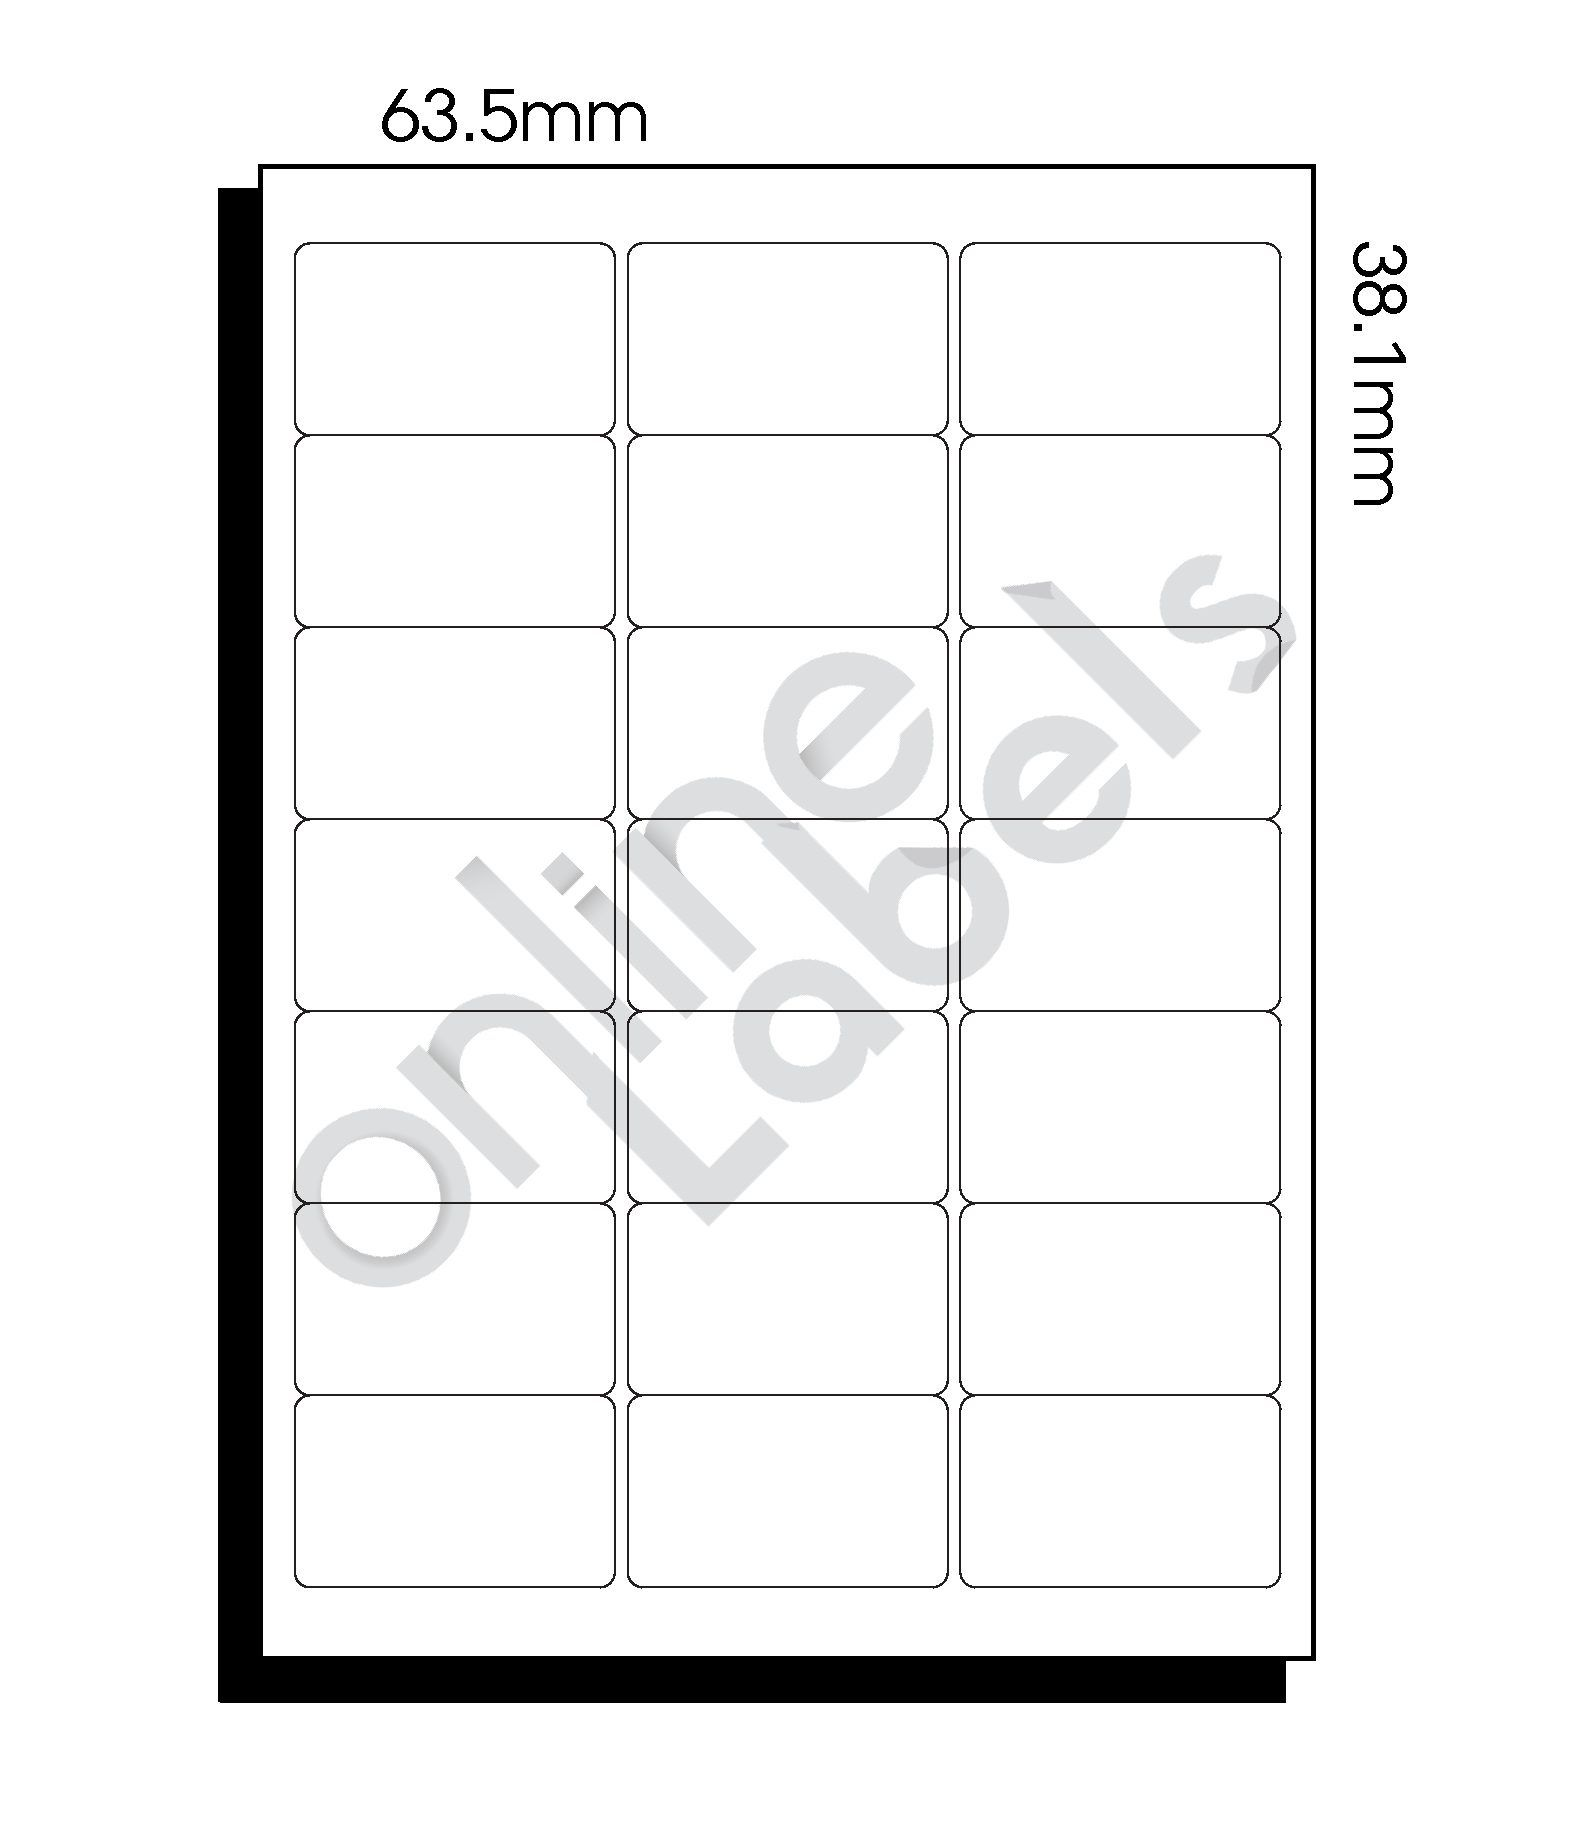 009 Beautiful Microsoft Word Addres Label Template 16 Per Sheet High Definition Full